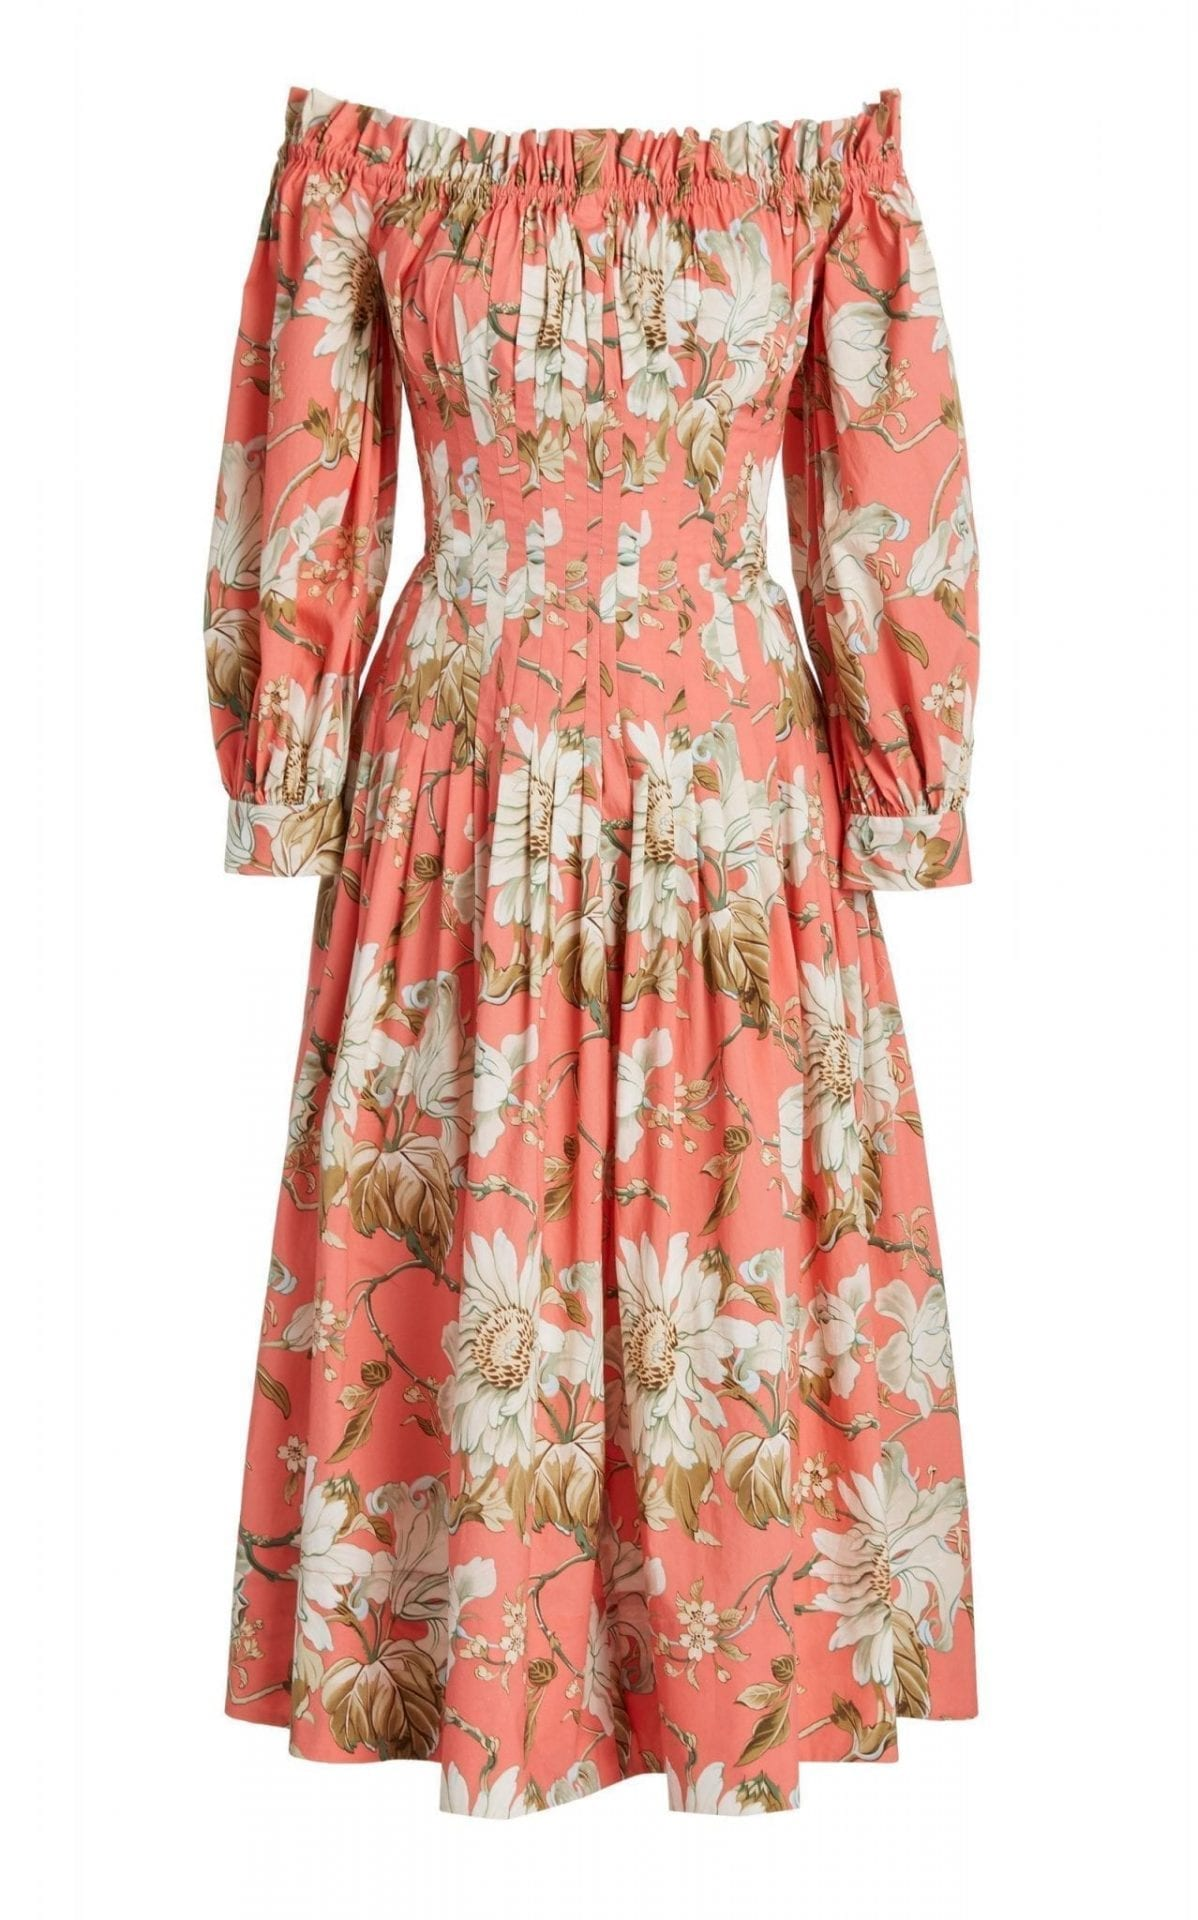 OSCAR DE LA RENTA Floral-Printed Dress